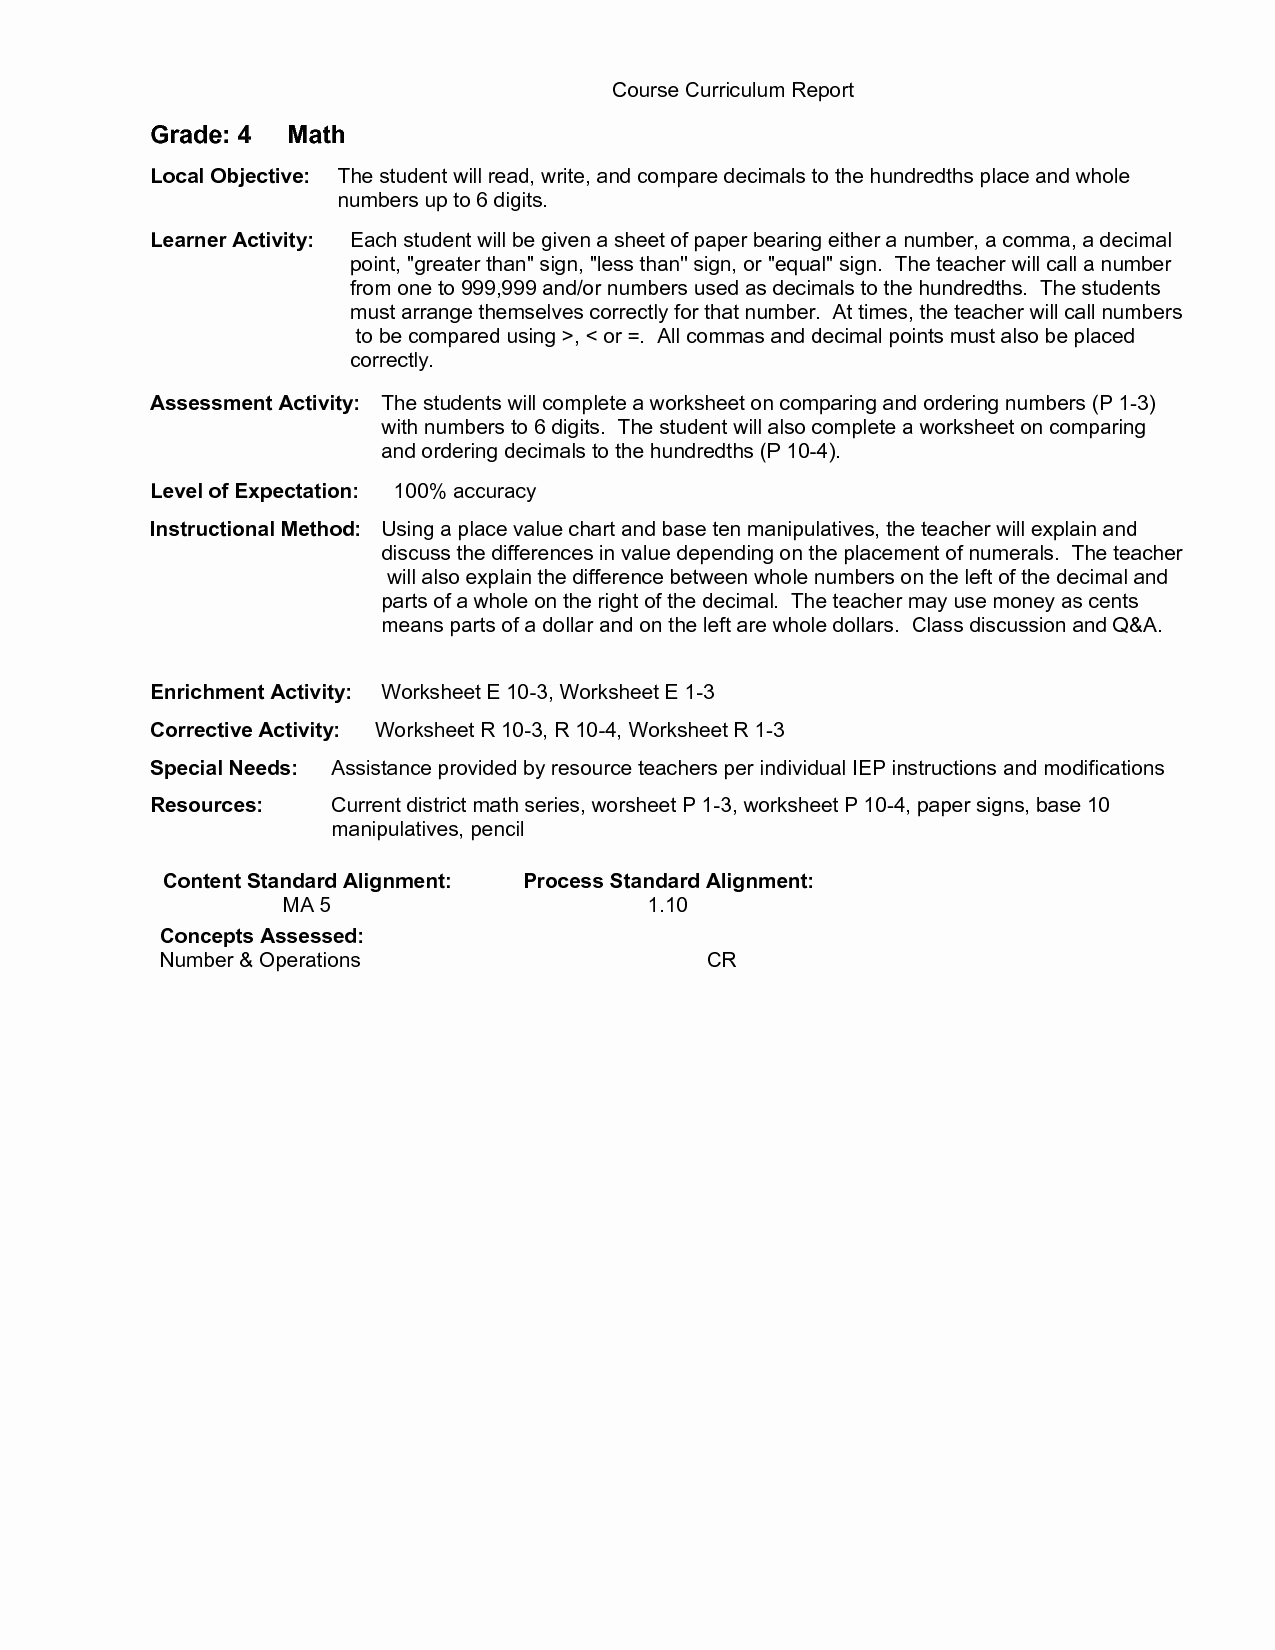 Making Conclusions Geometry Worksheet Answers Beautiful Drawing Conclusions Worksheet Grade 4